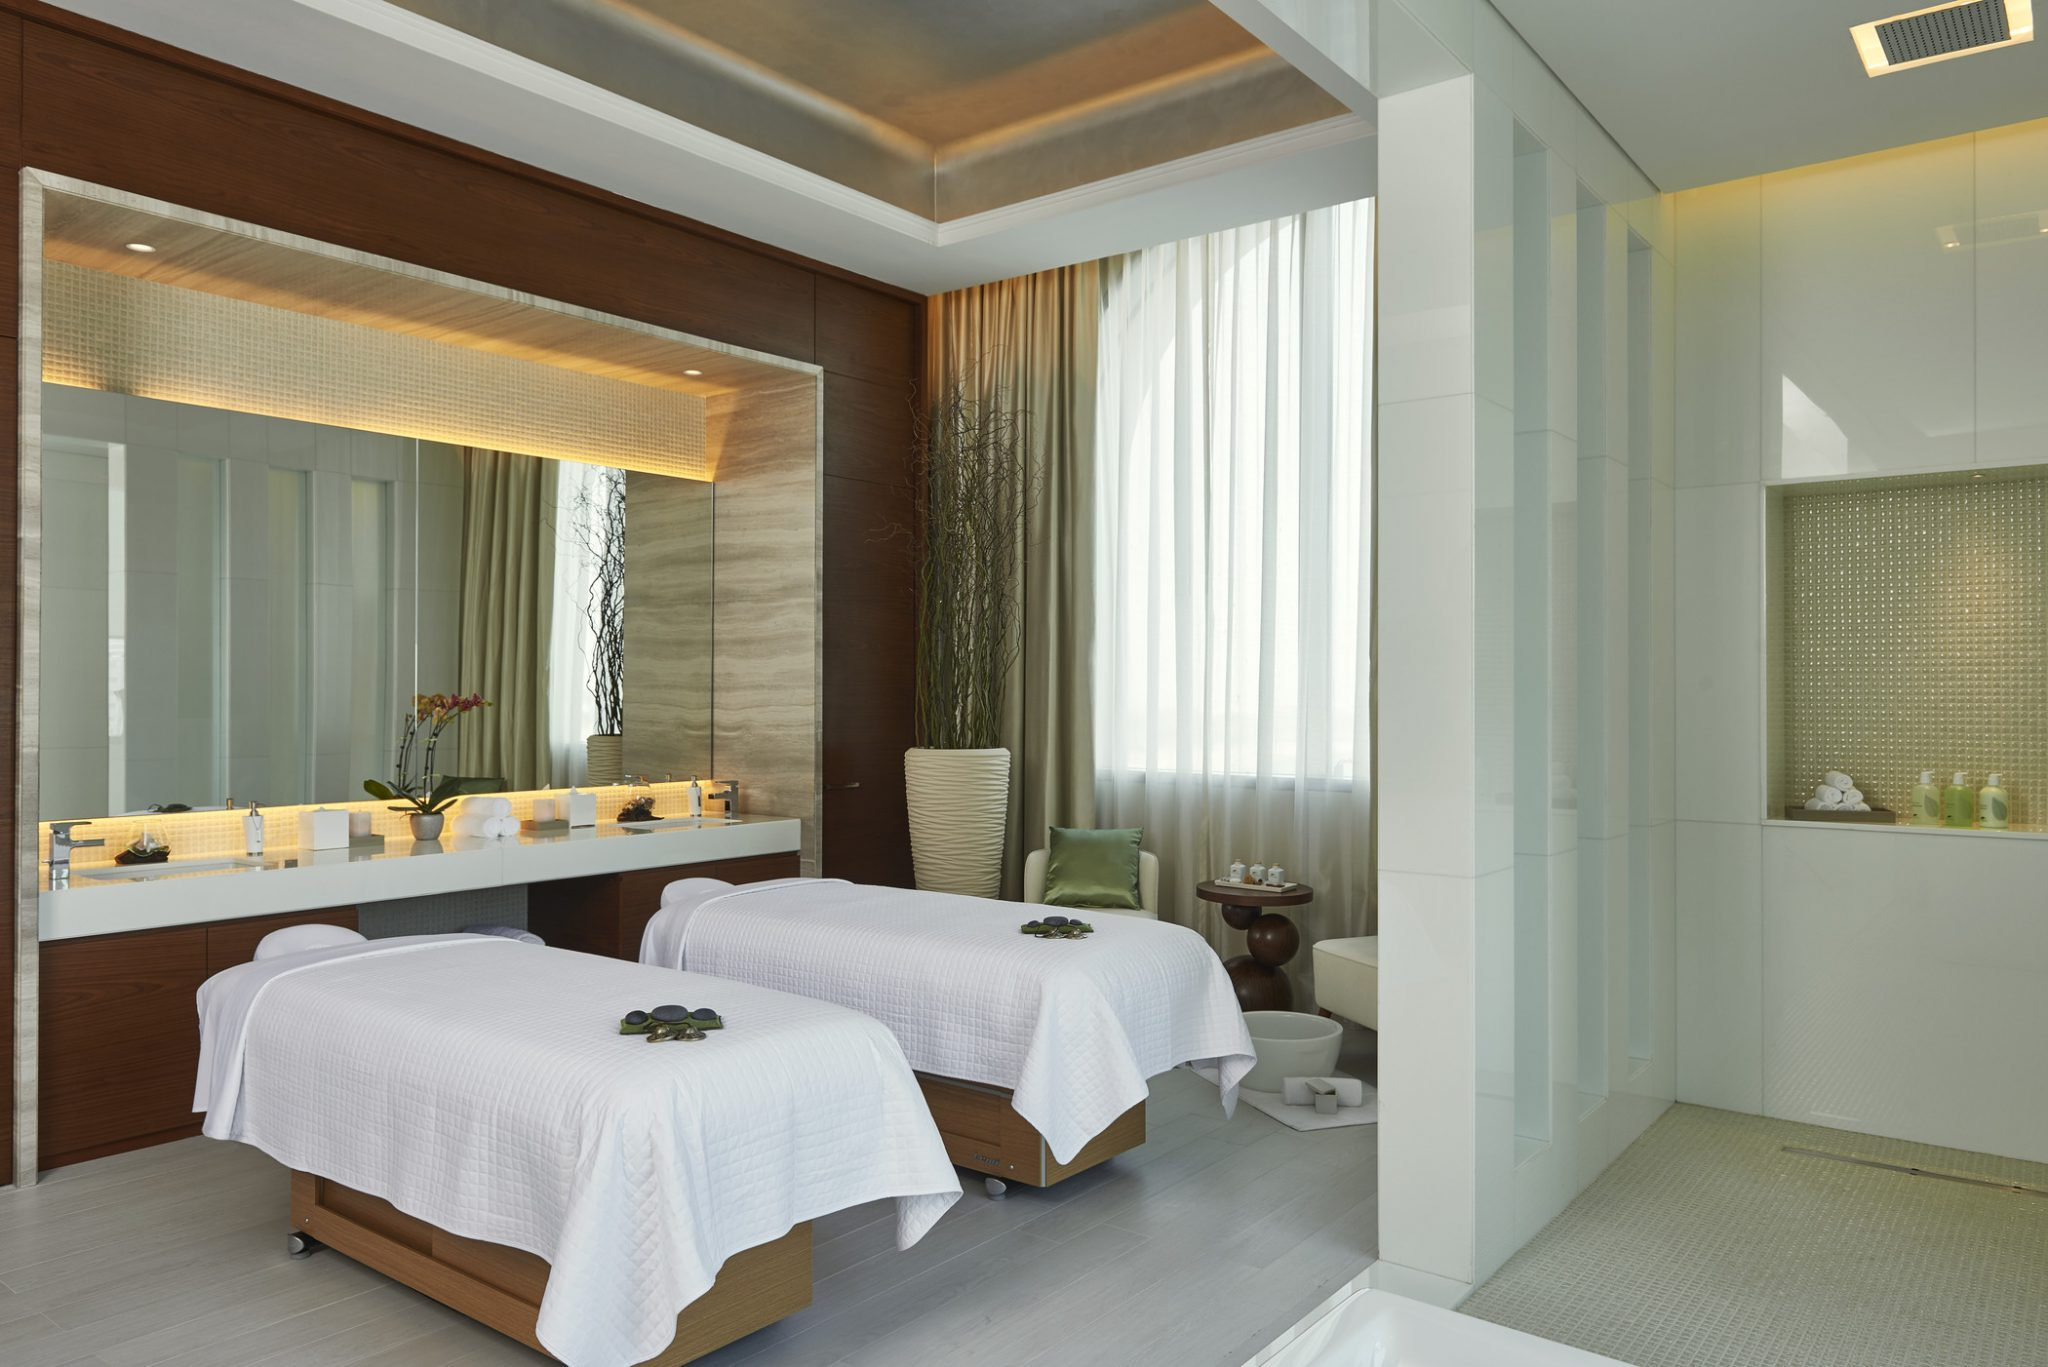 The Heavenly Spa. 3